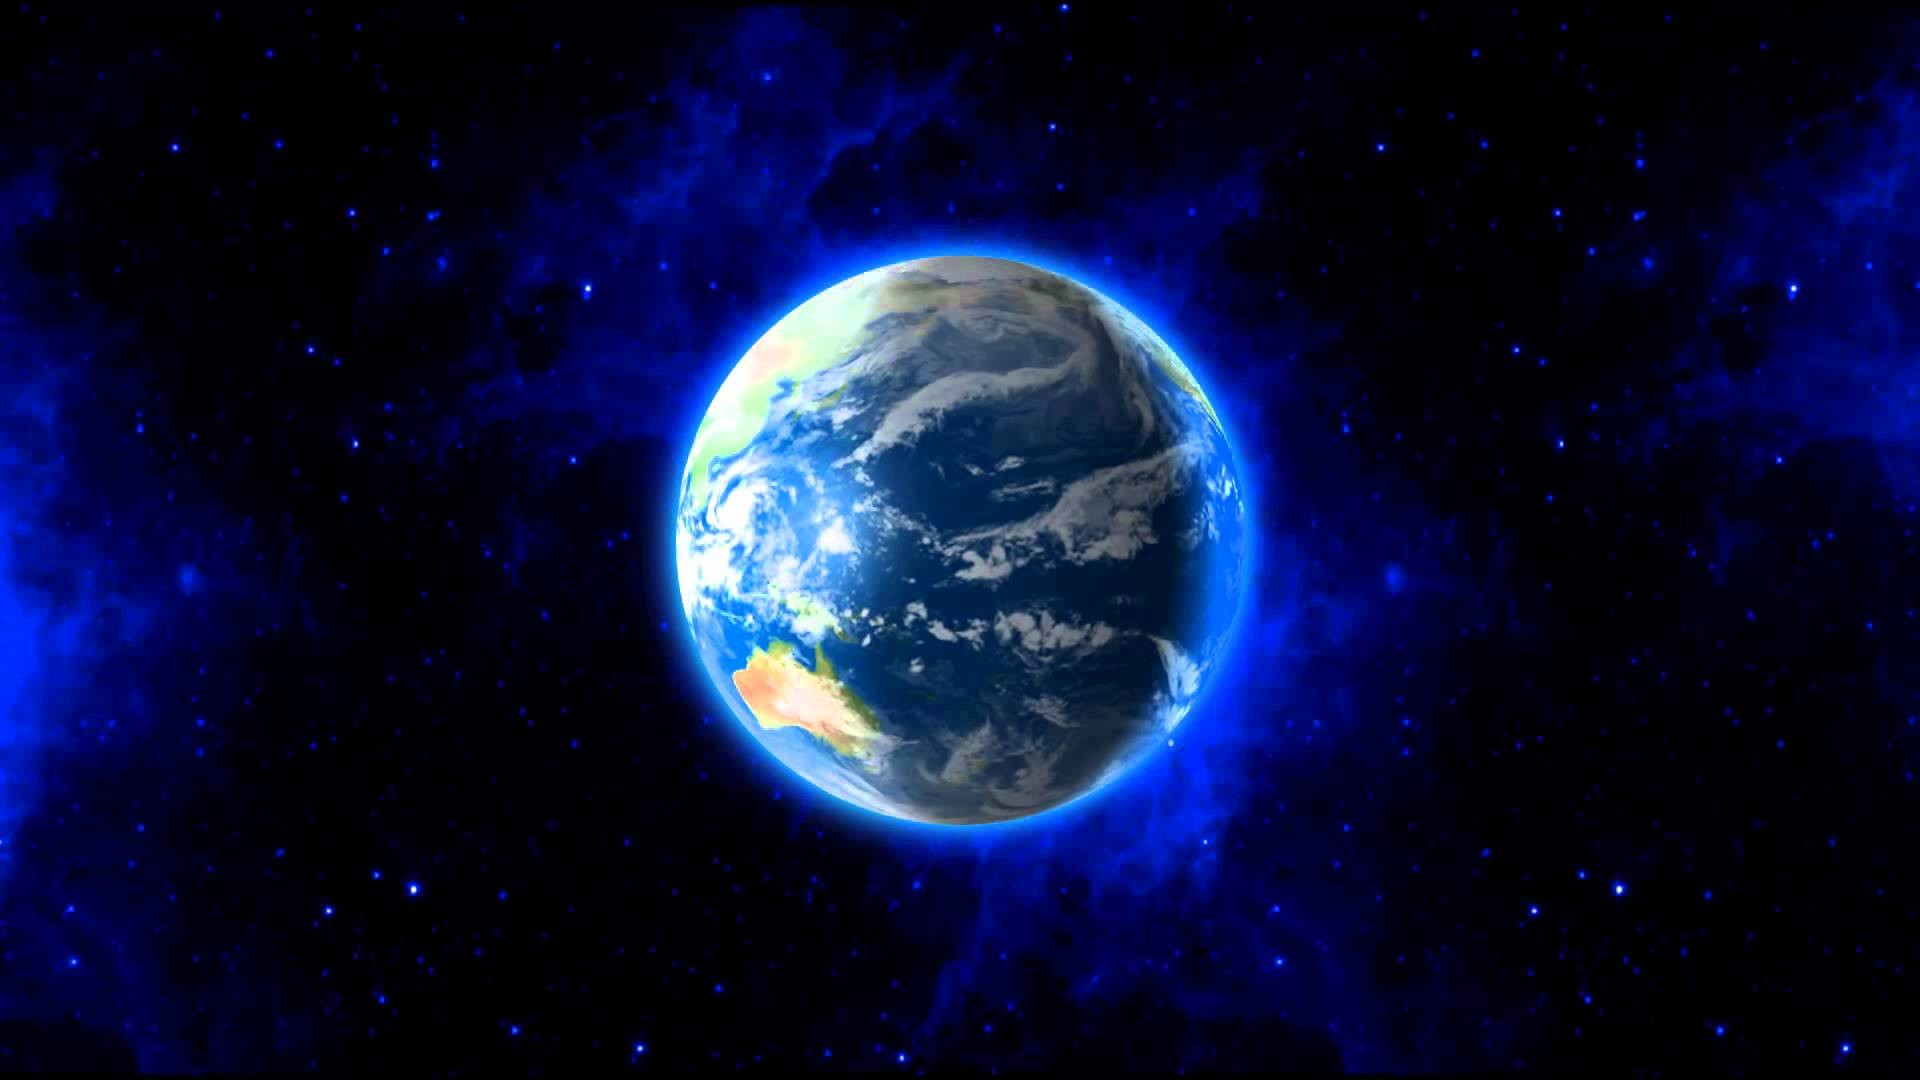 Beautiful Space 3d Live Wallpaper And Screensaver Space Animated Wallpaper 67 Images